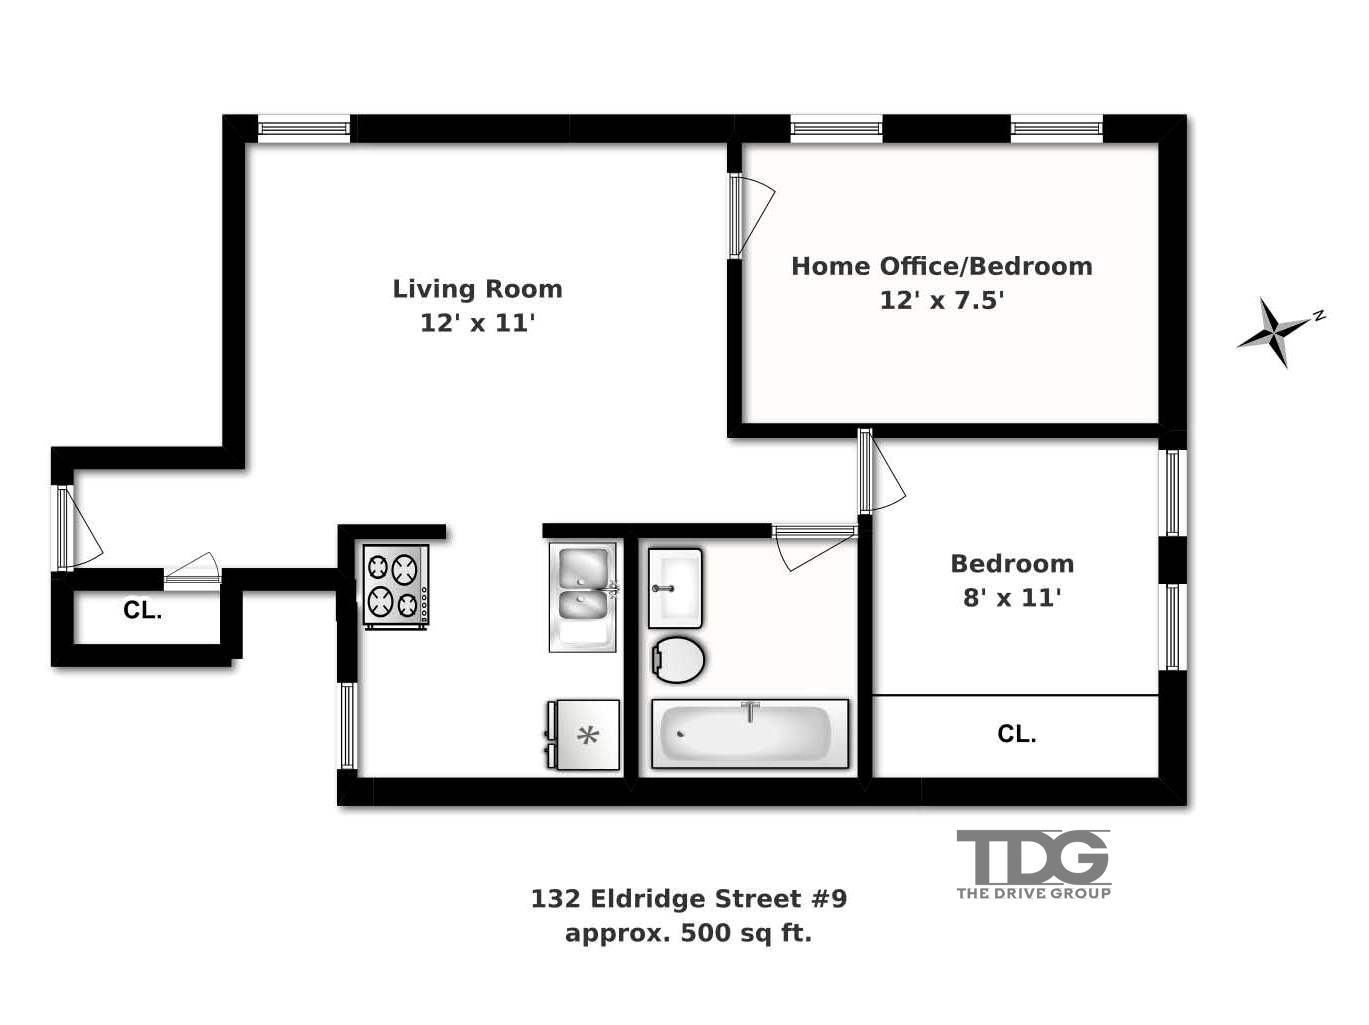 2 Bedroom Loft For Sale-Bank Approved Building